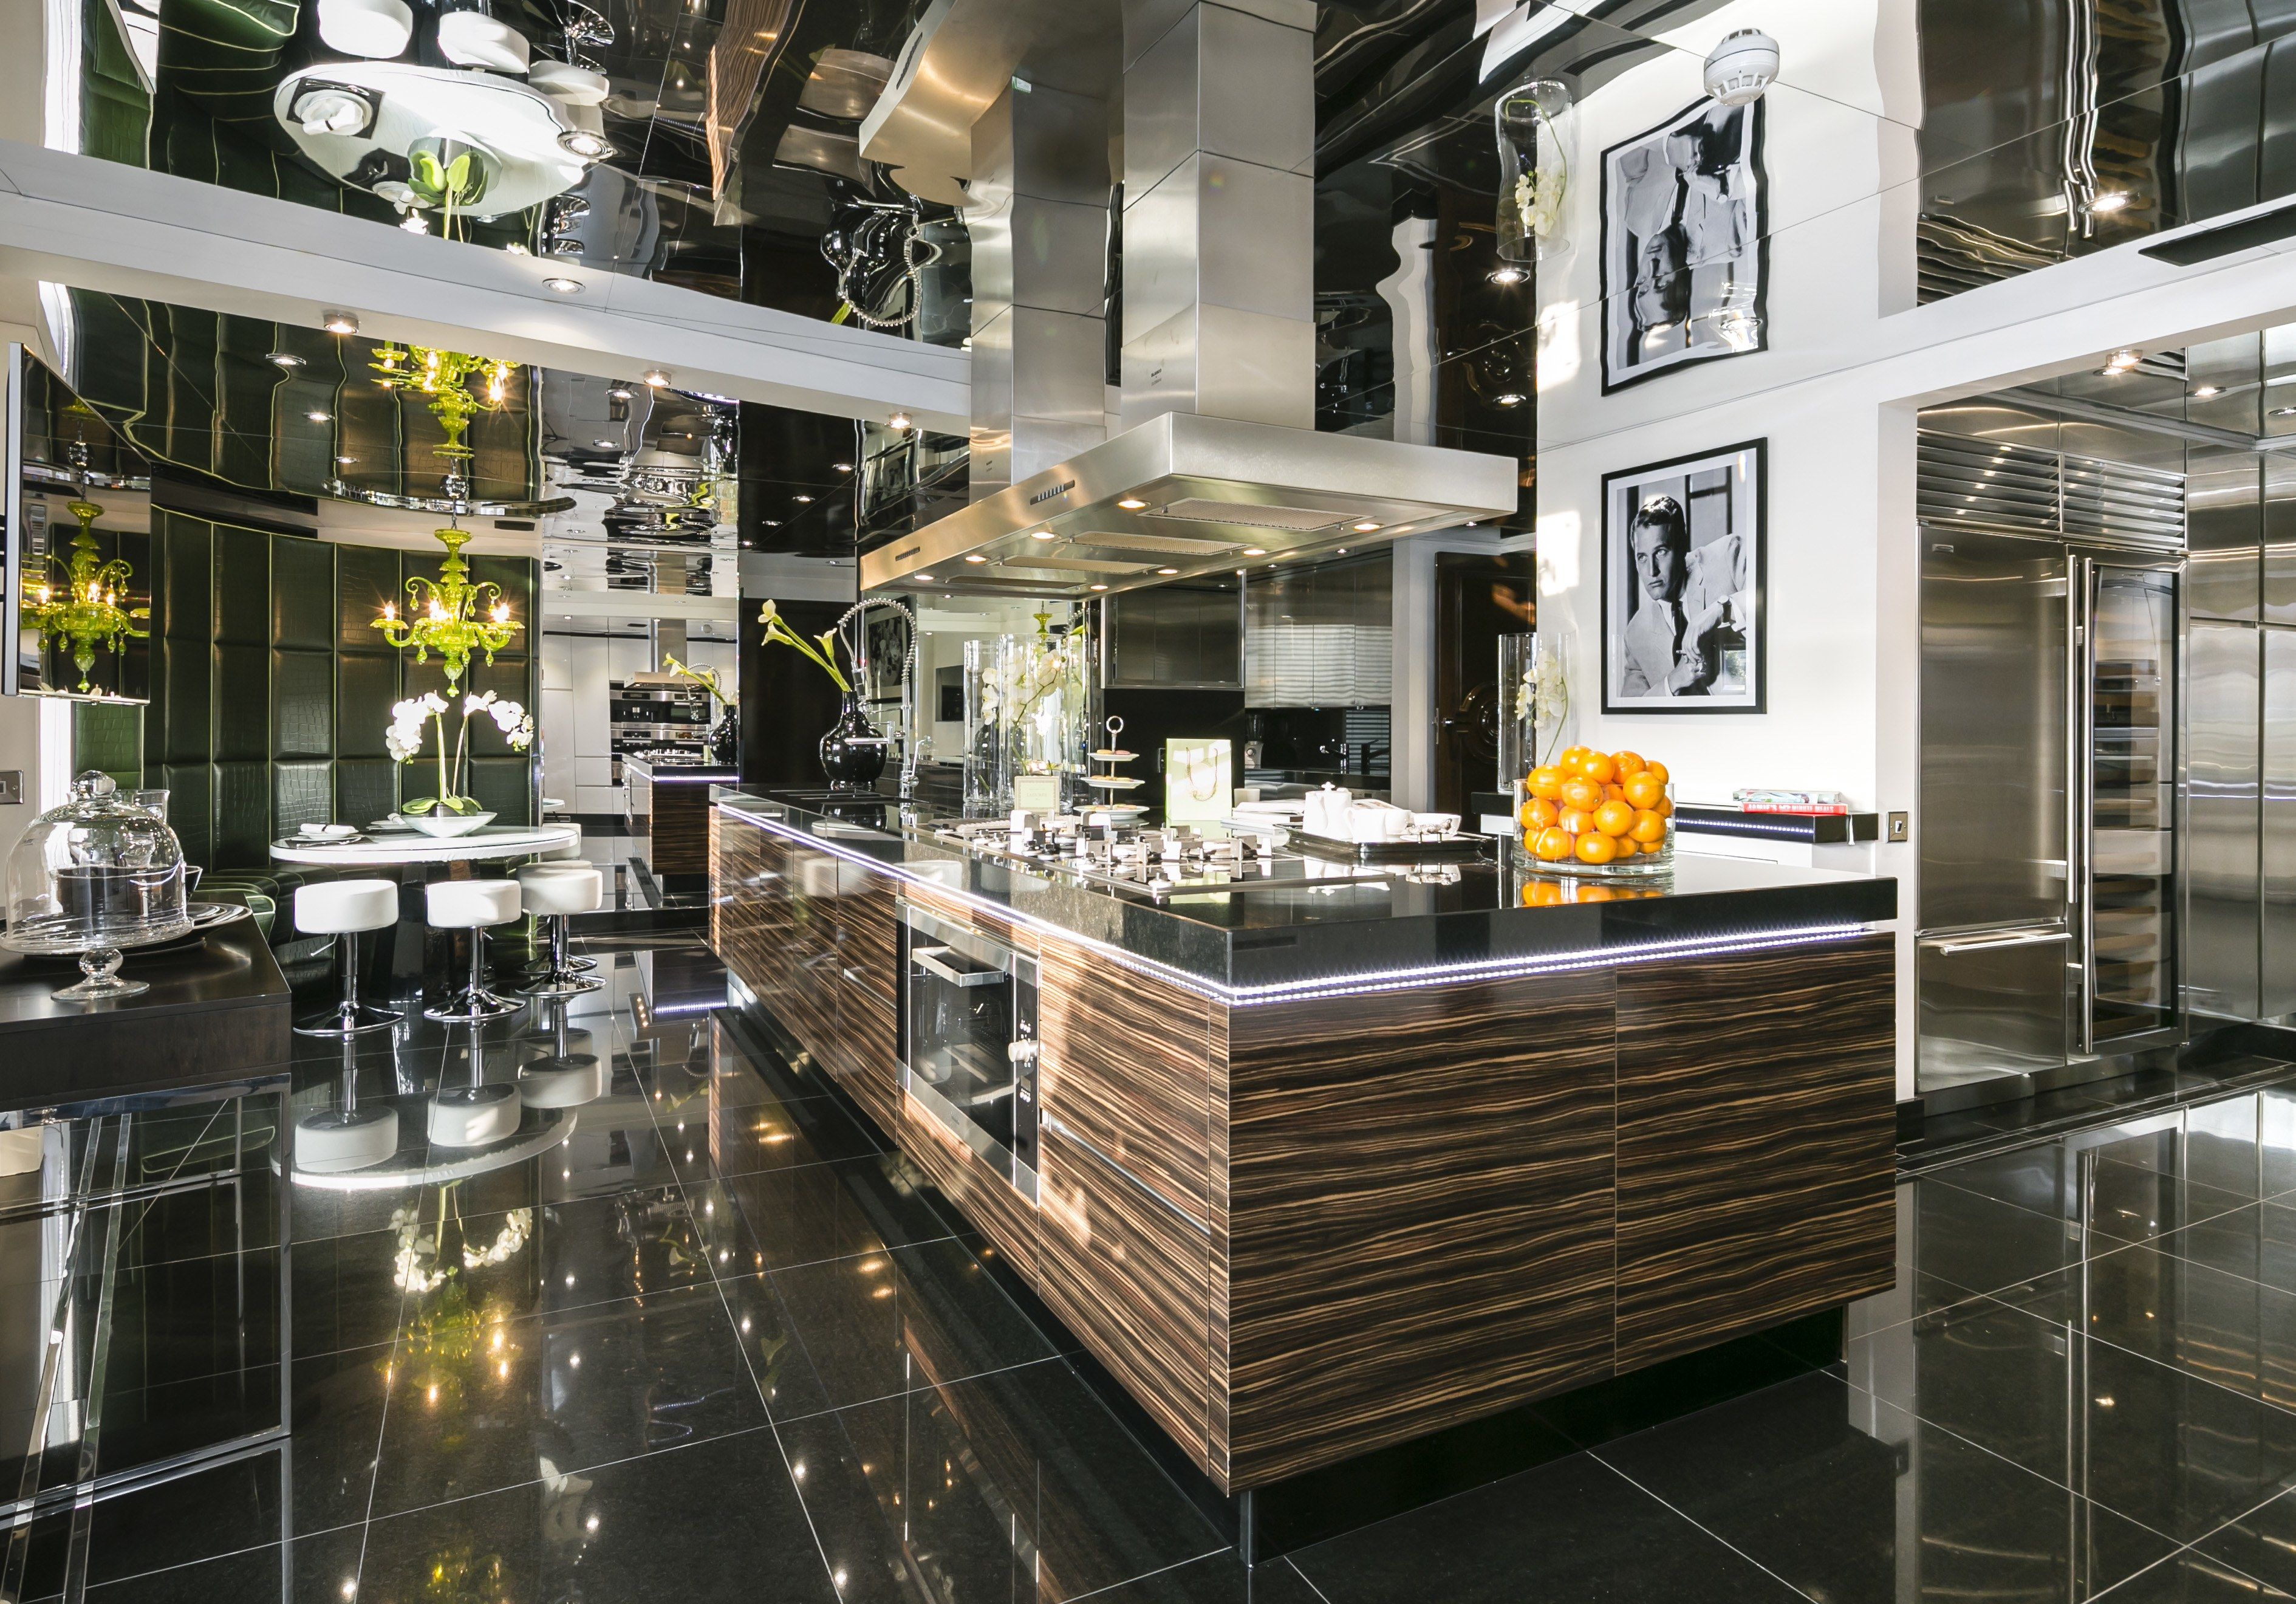 Rihanna Lived in This $52 Million London Penthouse